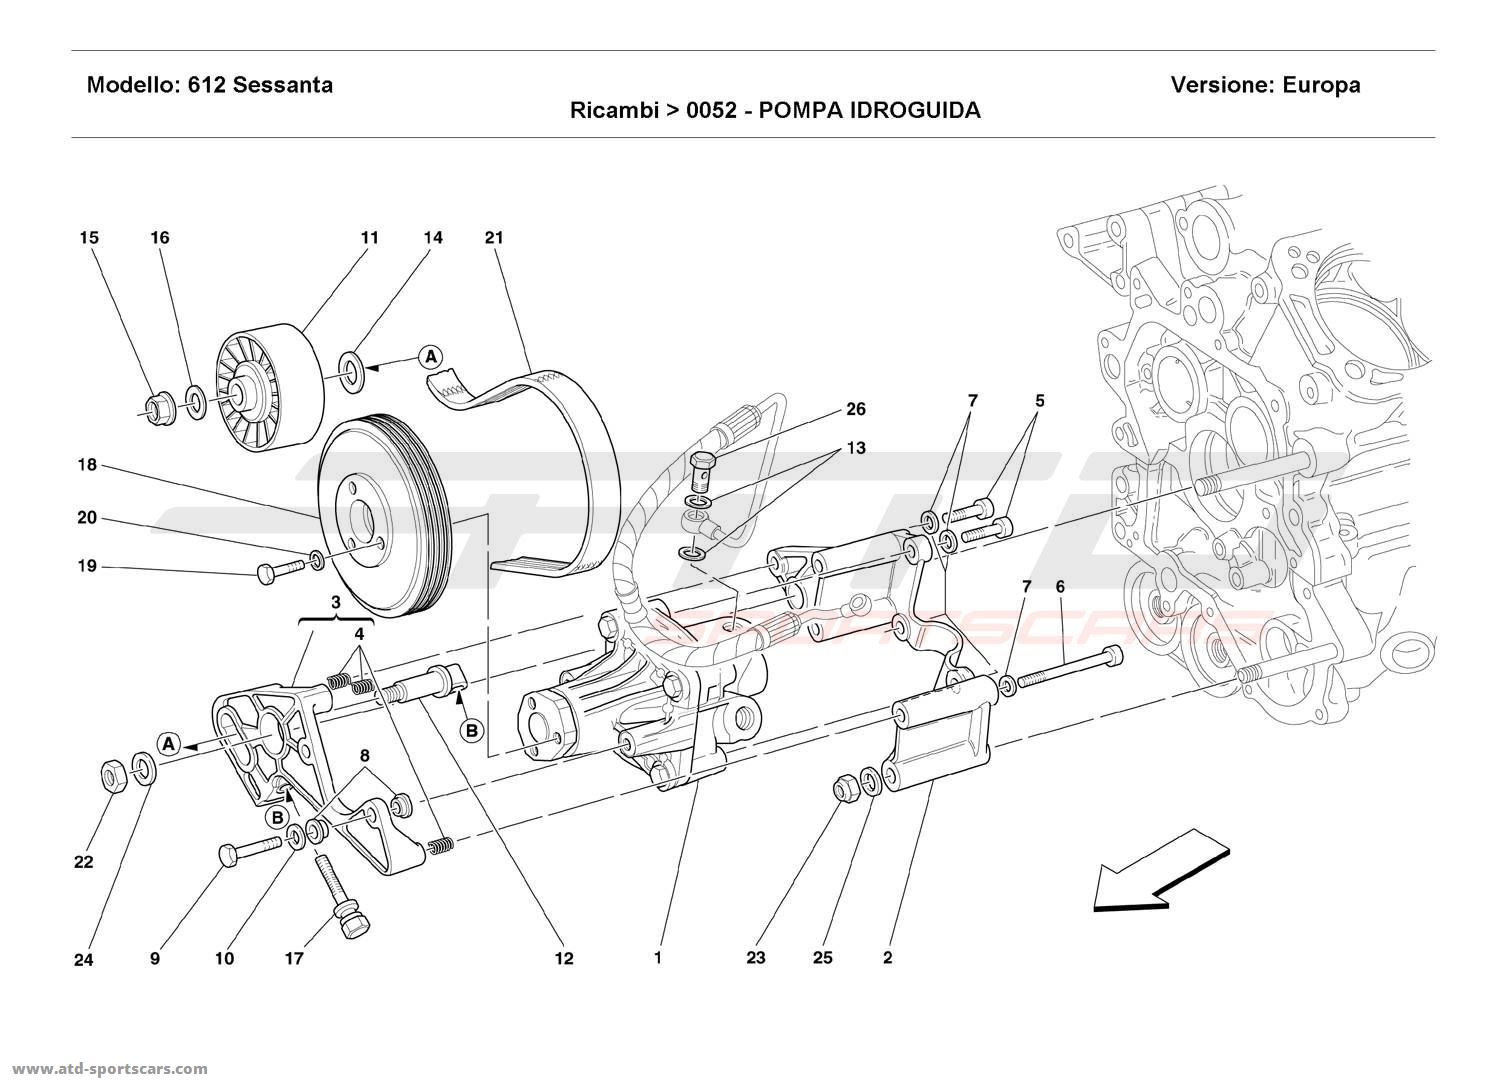 Ferrari 612 Sessanta HYDRAULIC SERVO-CONTROL PUMP parts at